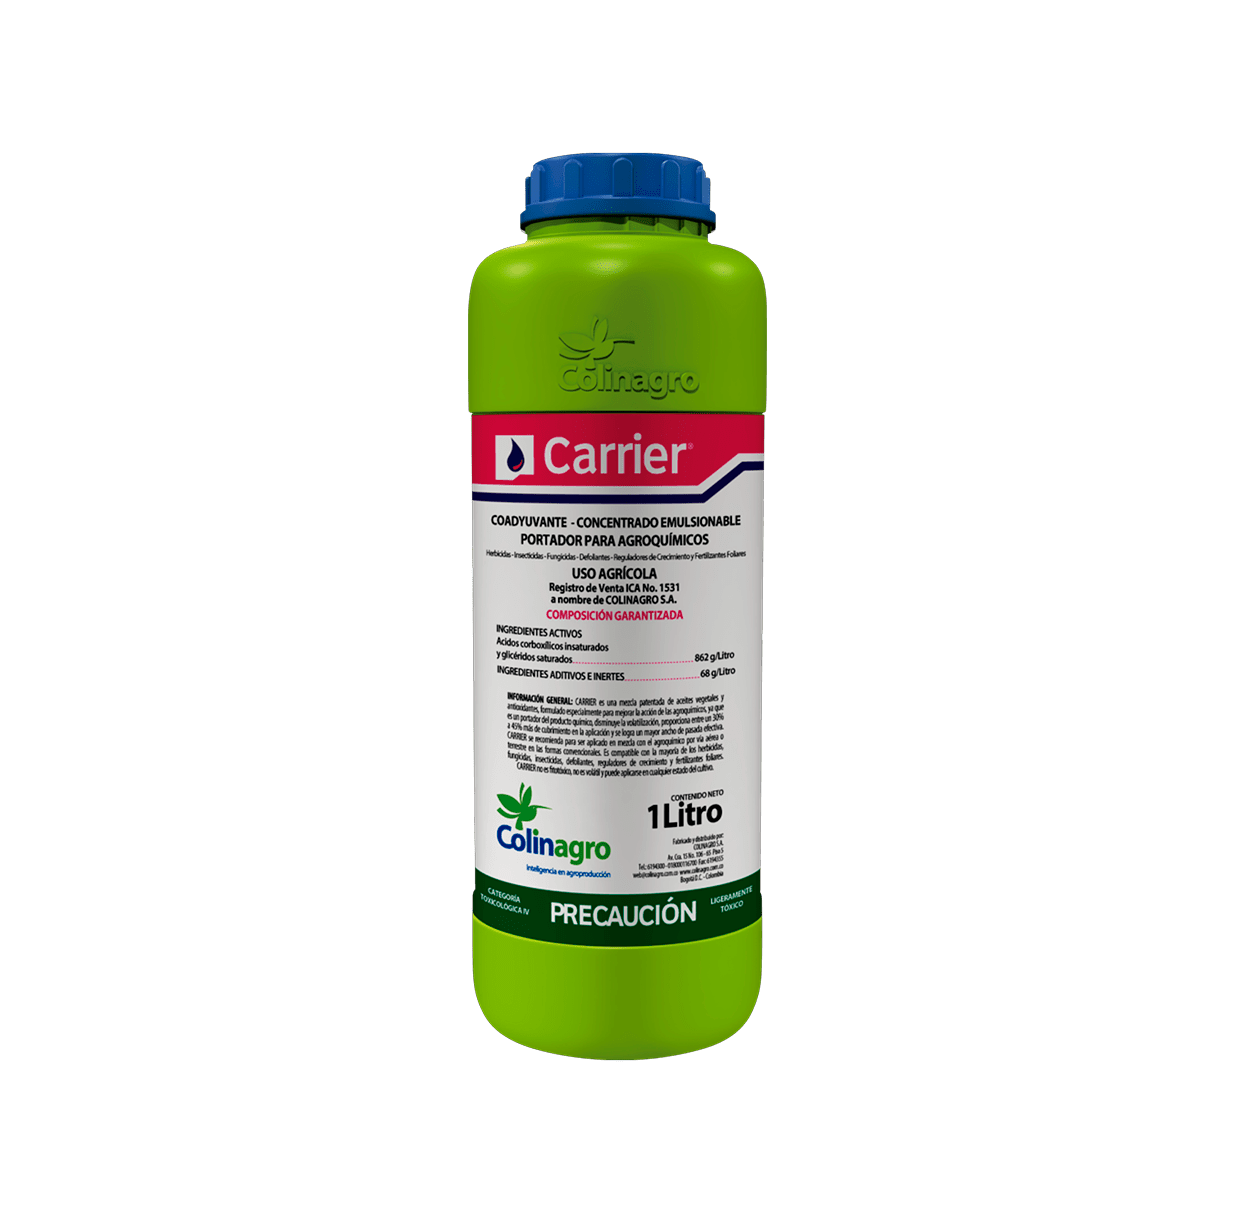 carrier-2.png